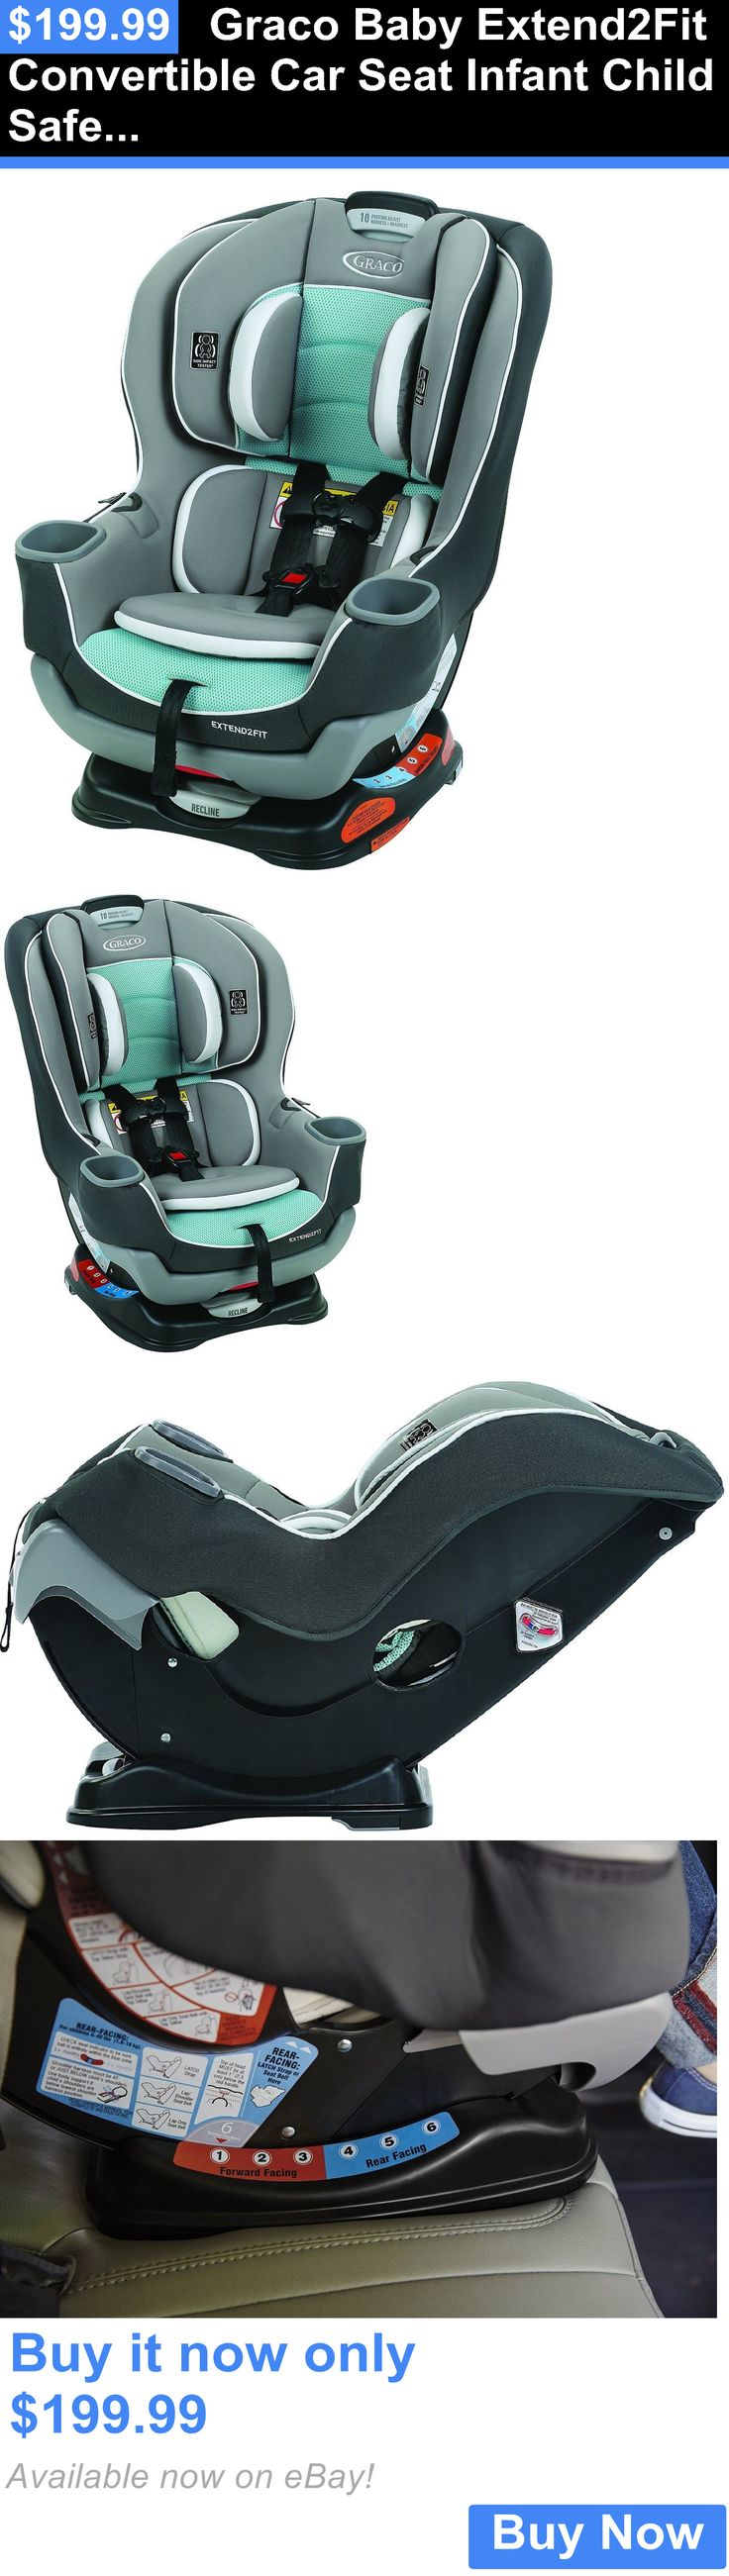 Baby graco baby extend2fit convertible car seat infant child safety spire new buy it now